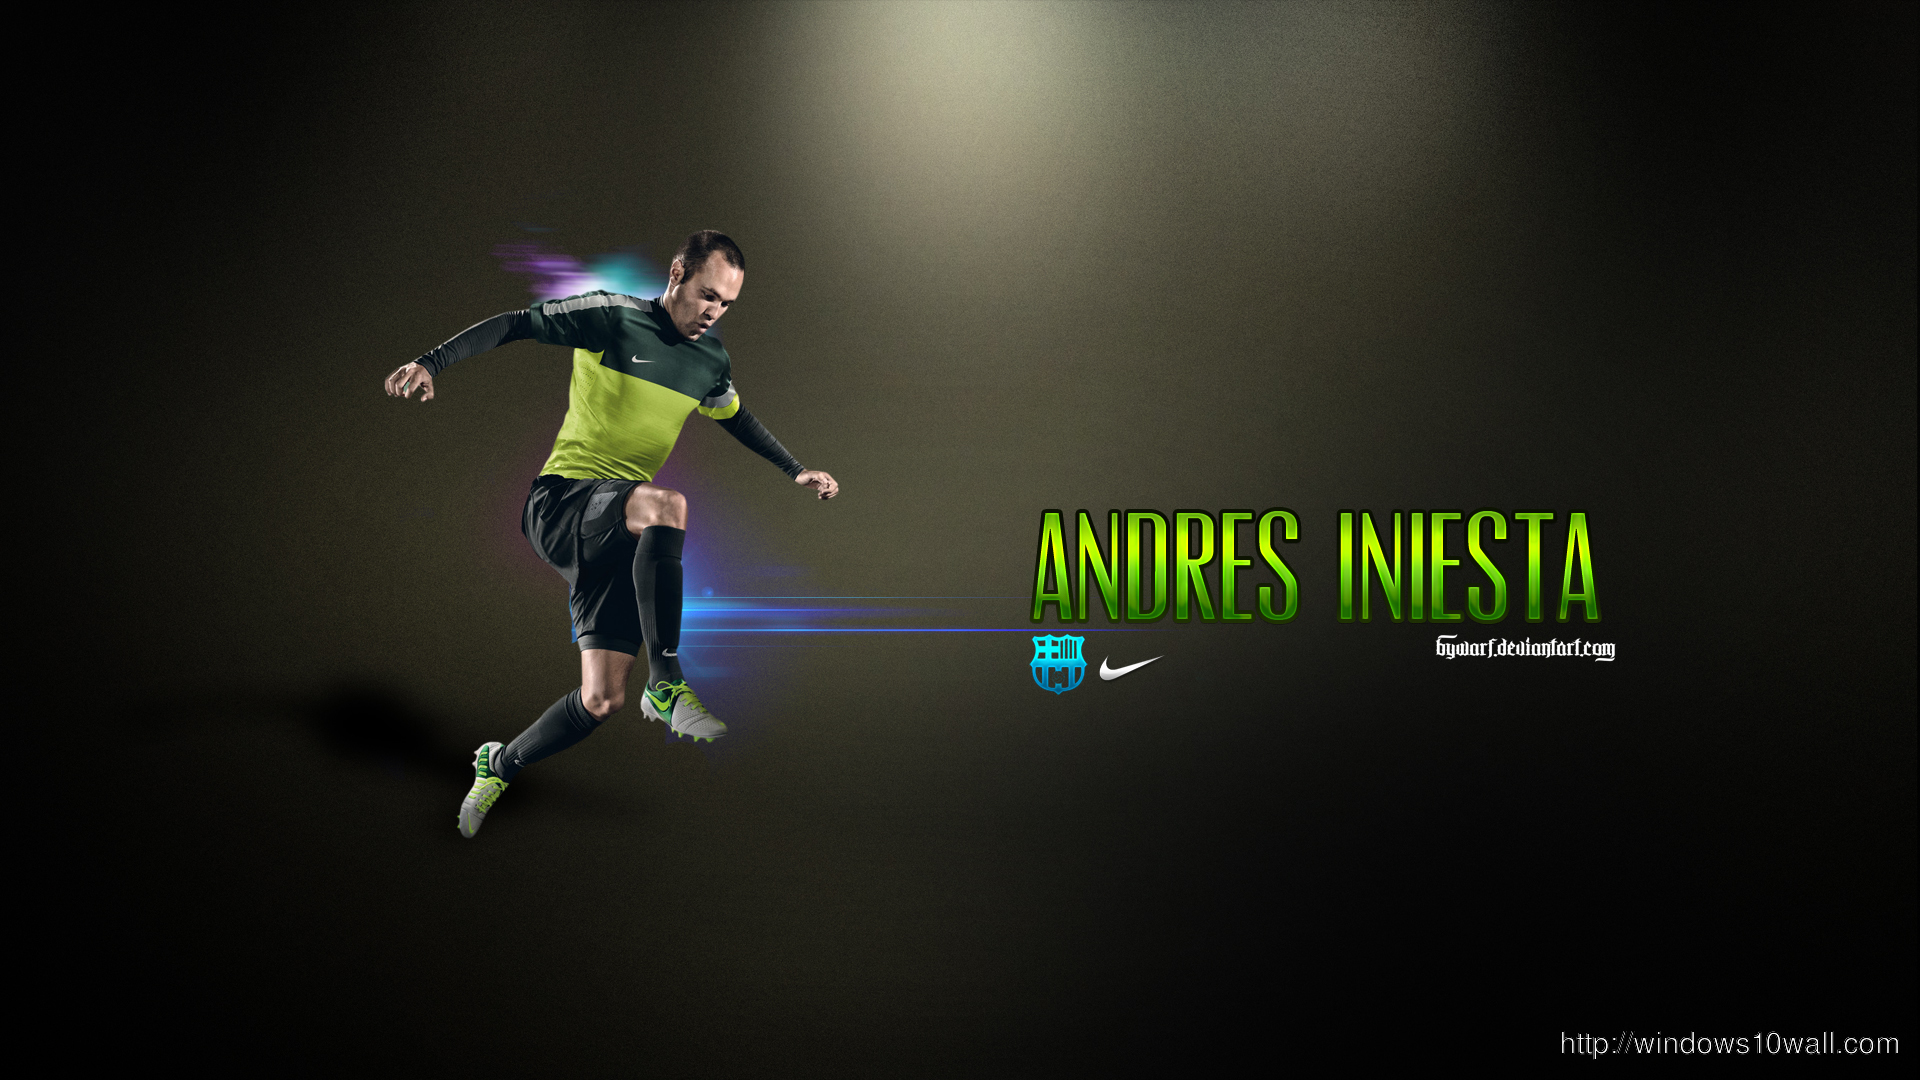 andres iniesta hairstyle